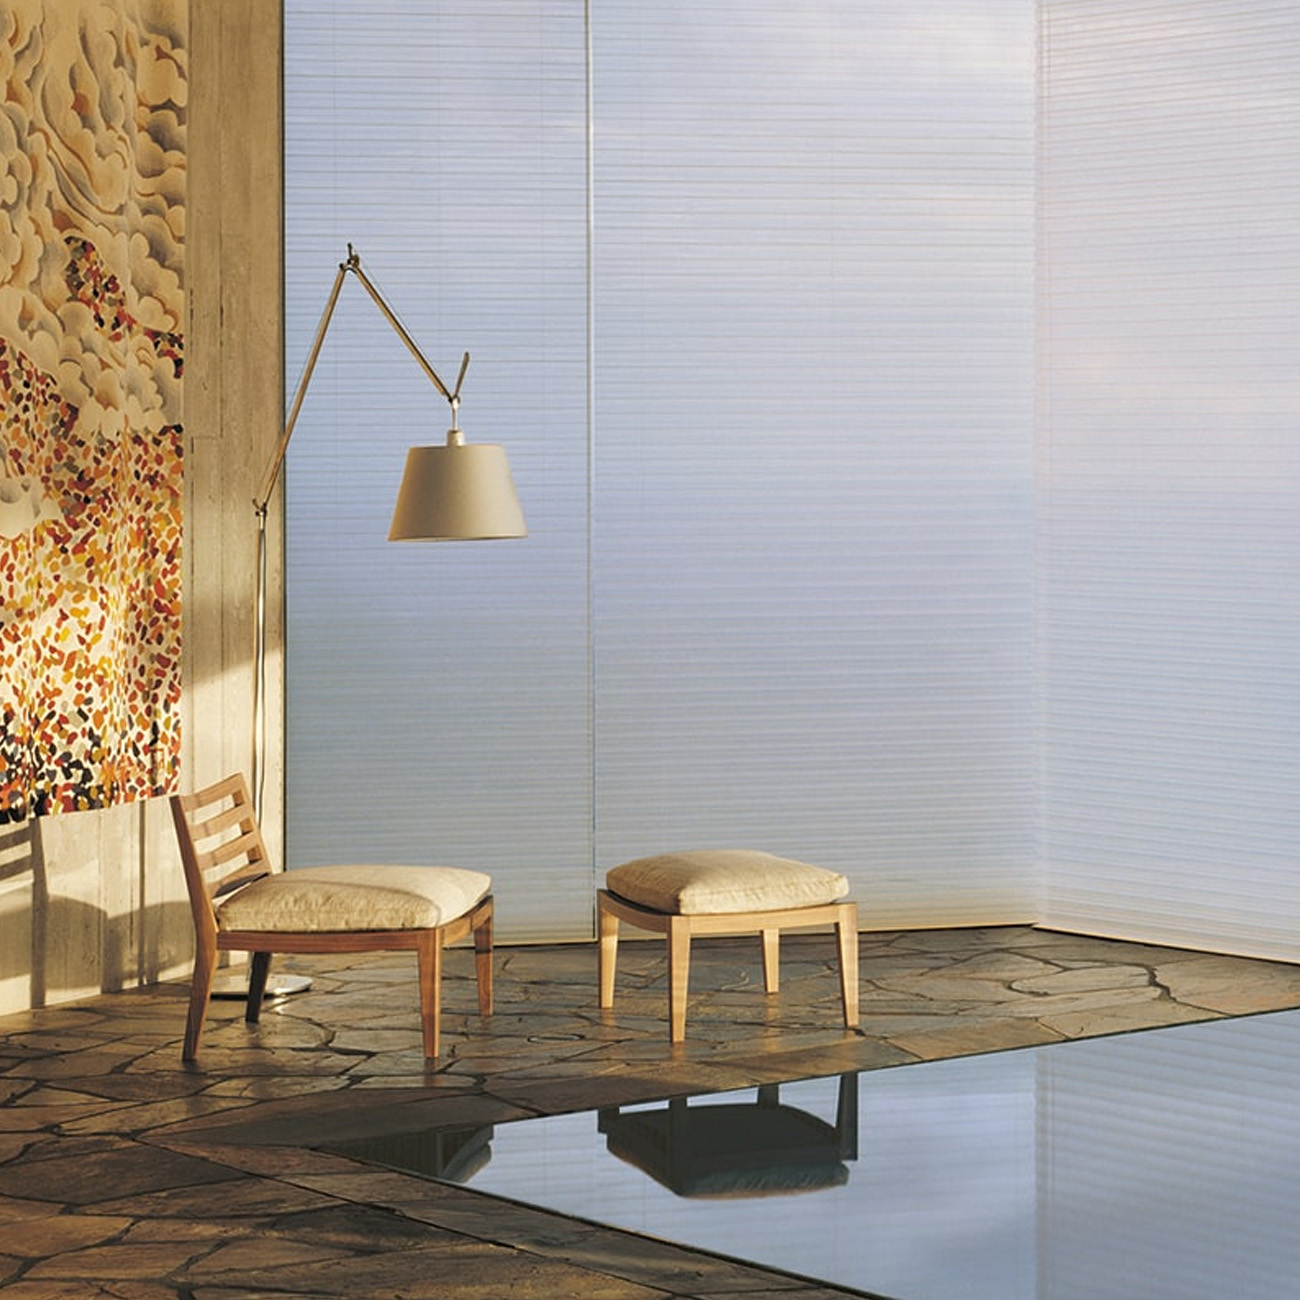 reflective glass walls